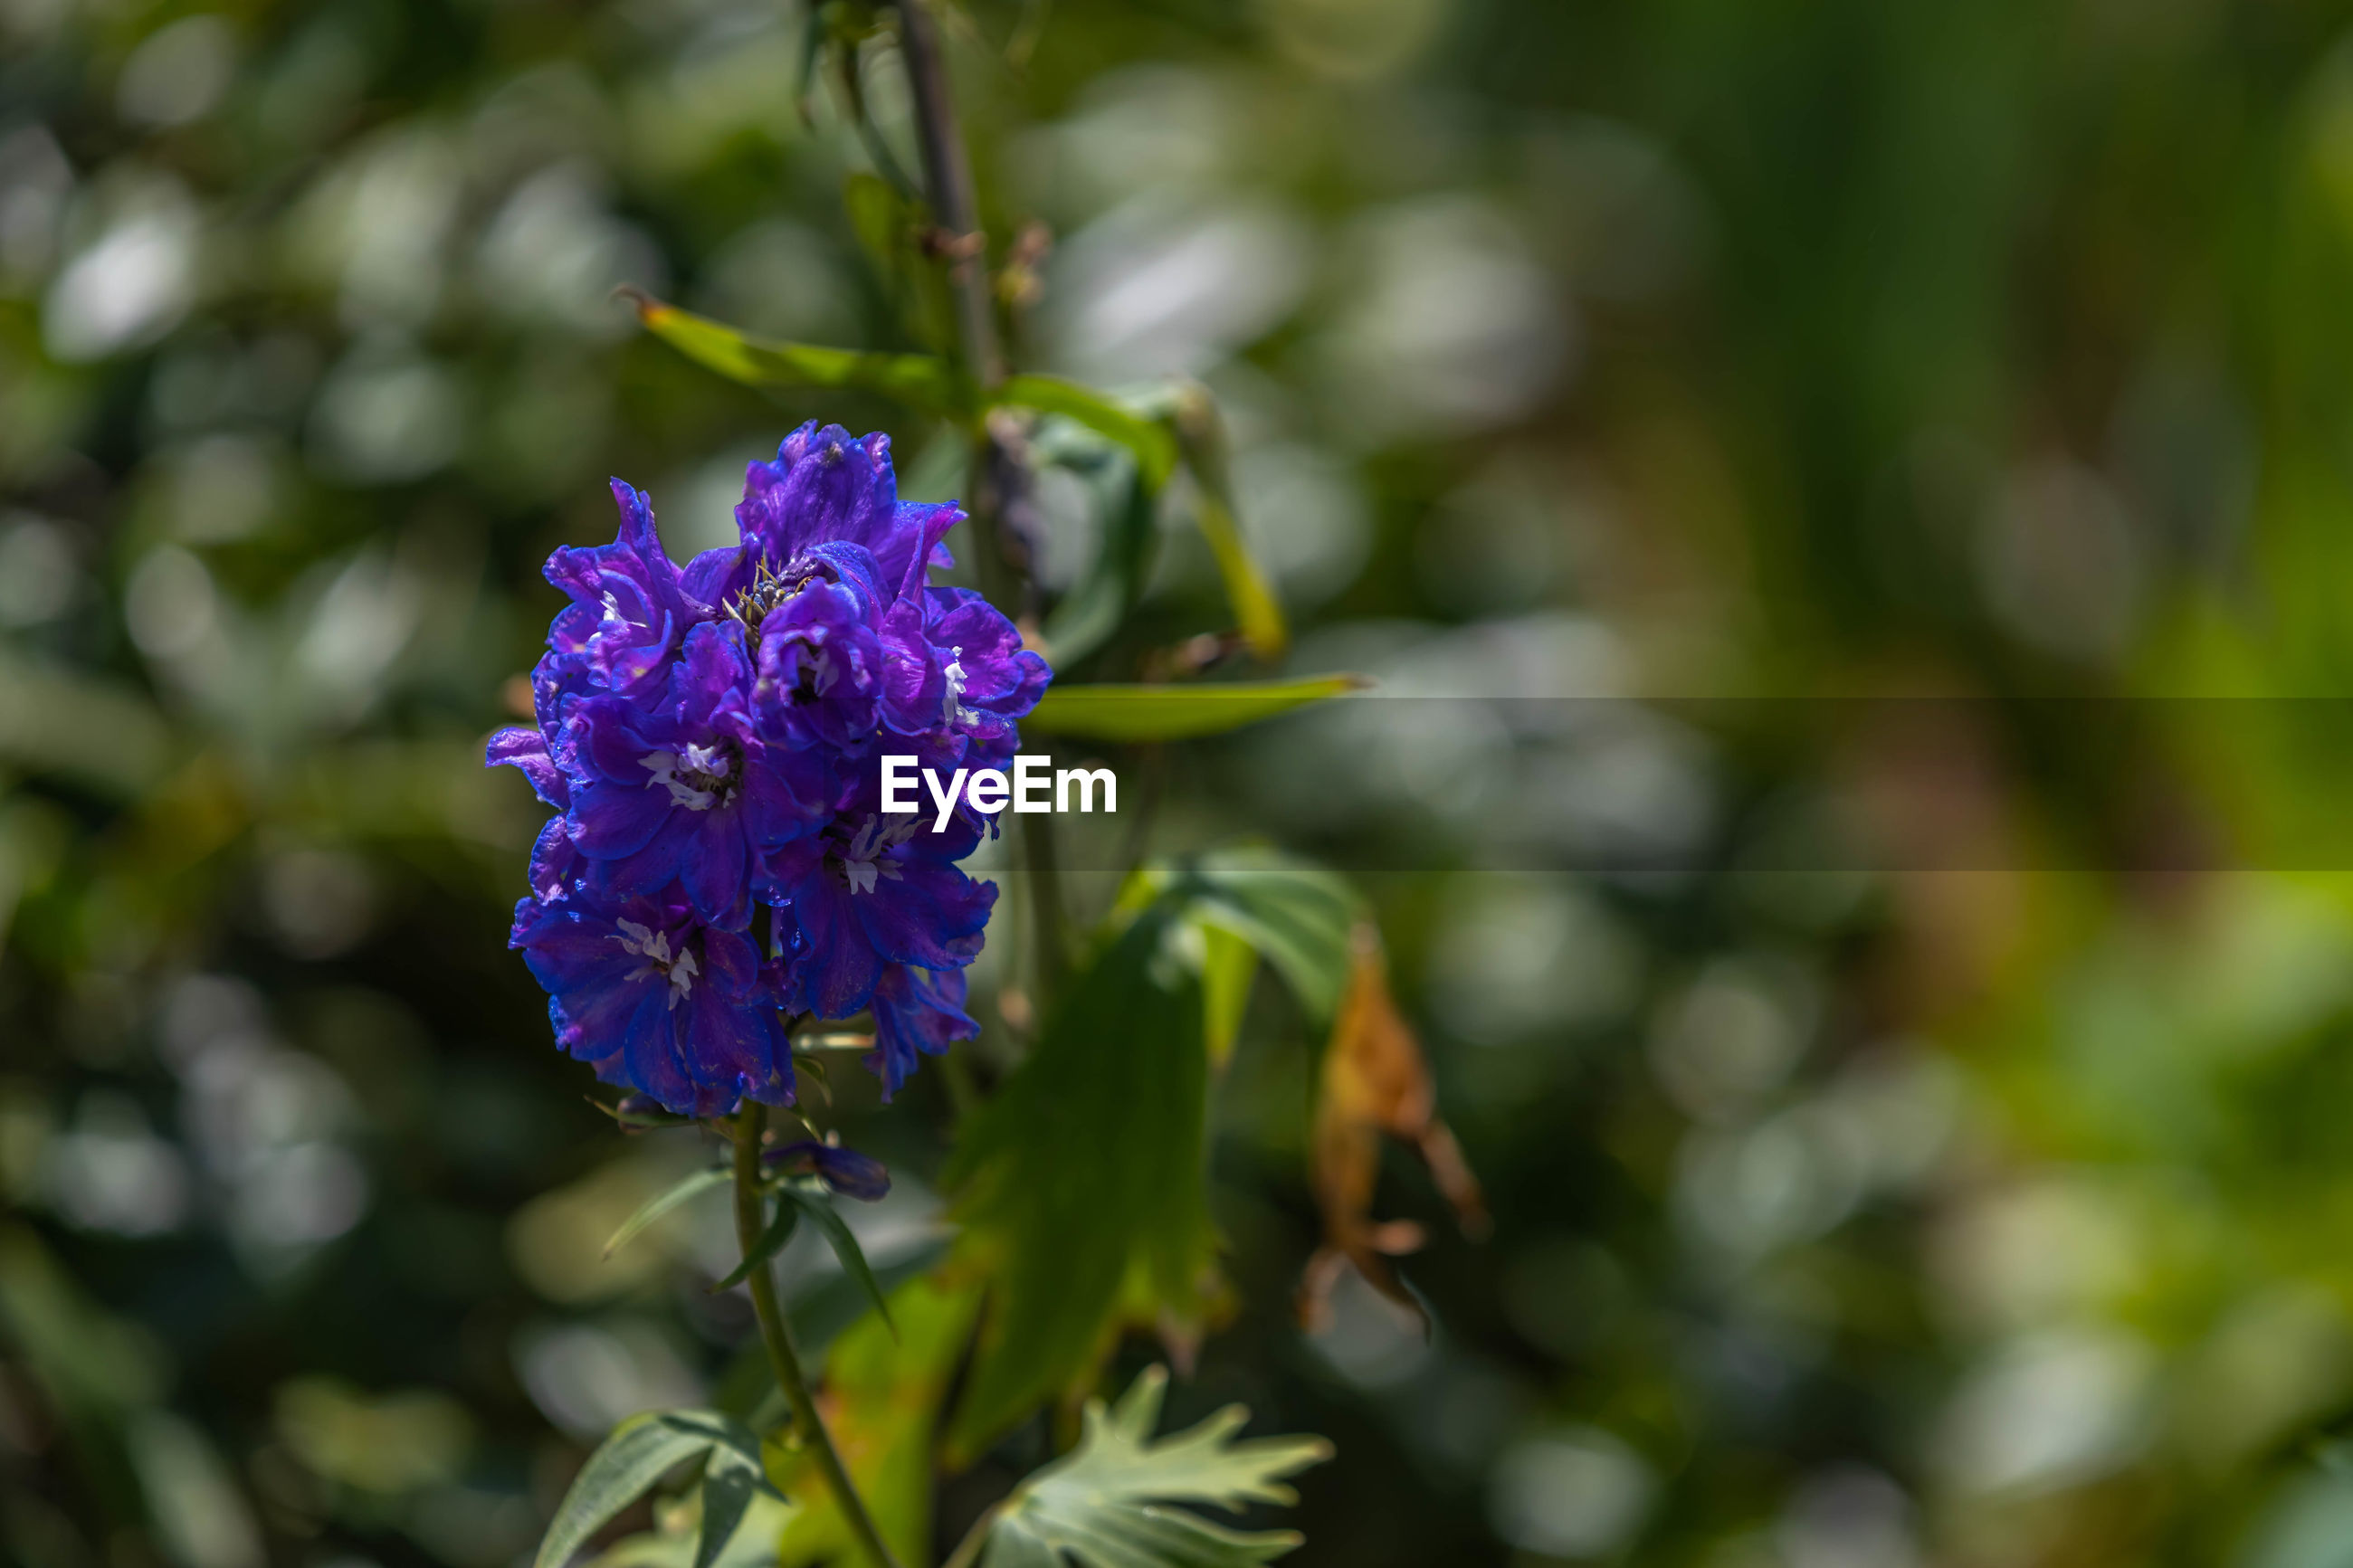 CLOSE-UP OF PURPLE FLOWER ON PLANT